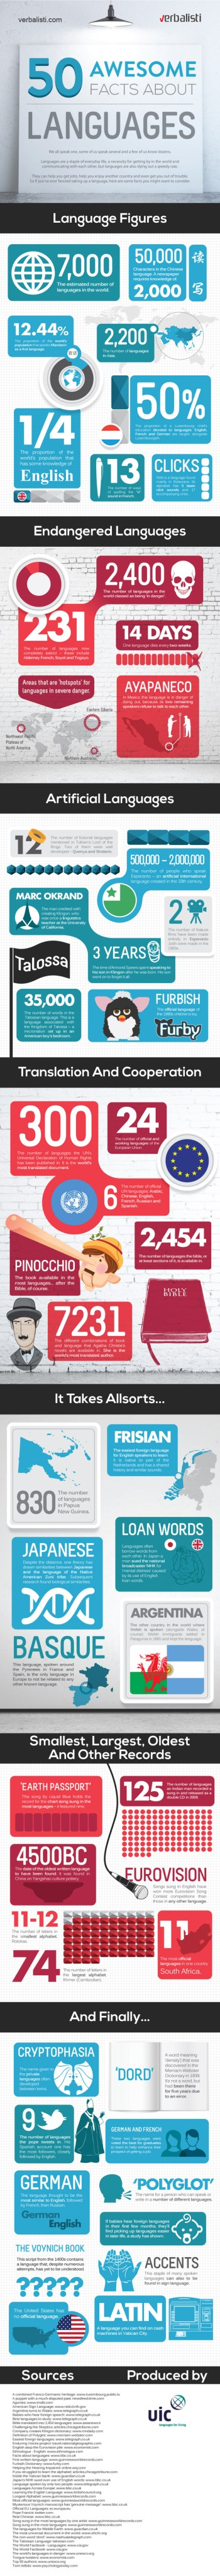 Fun facts about languages